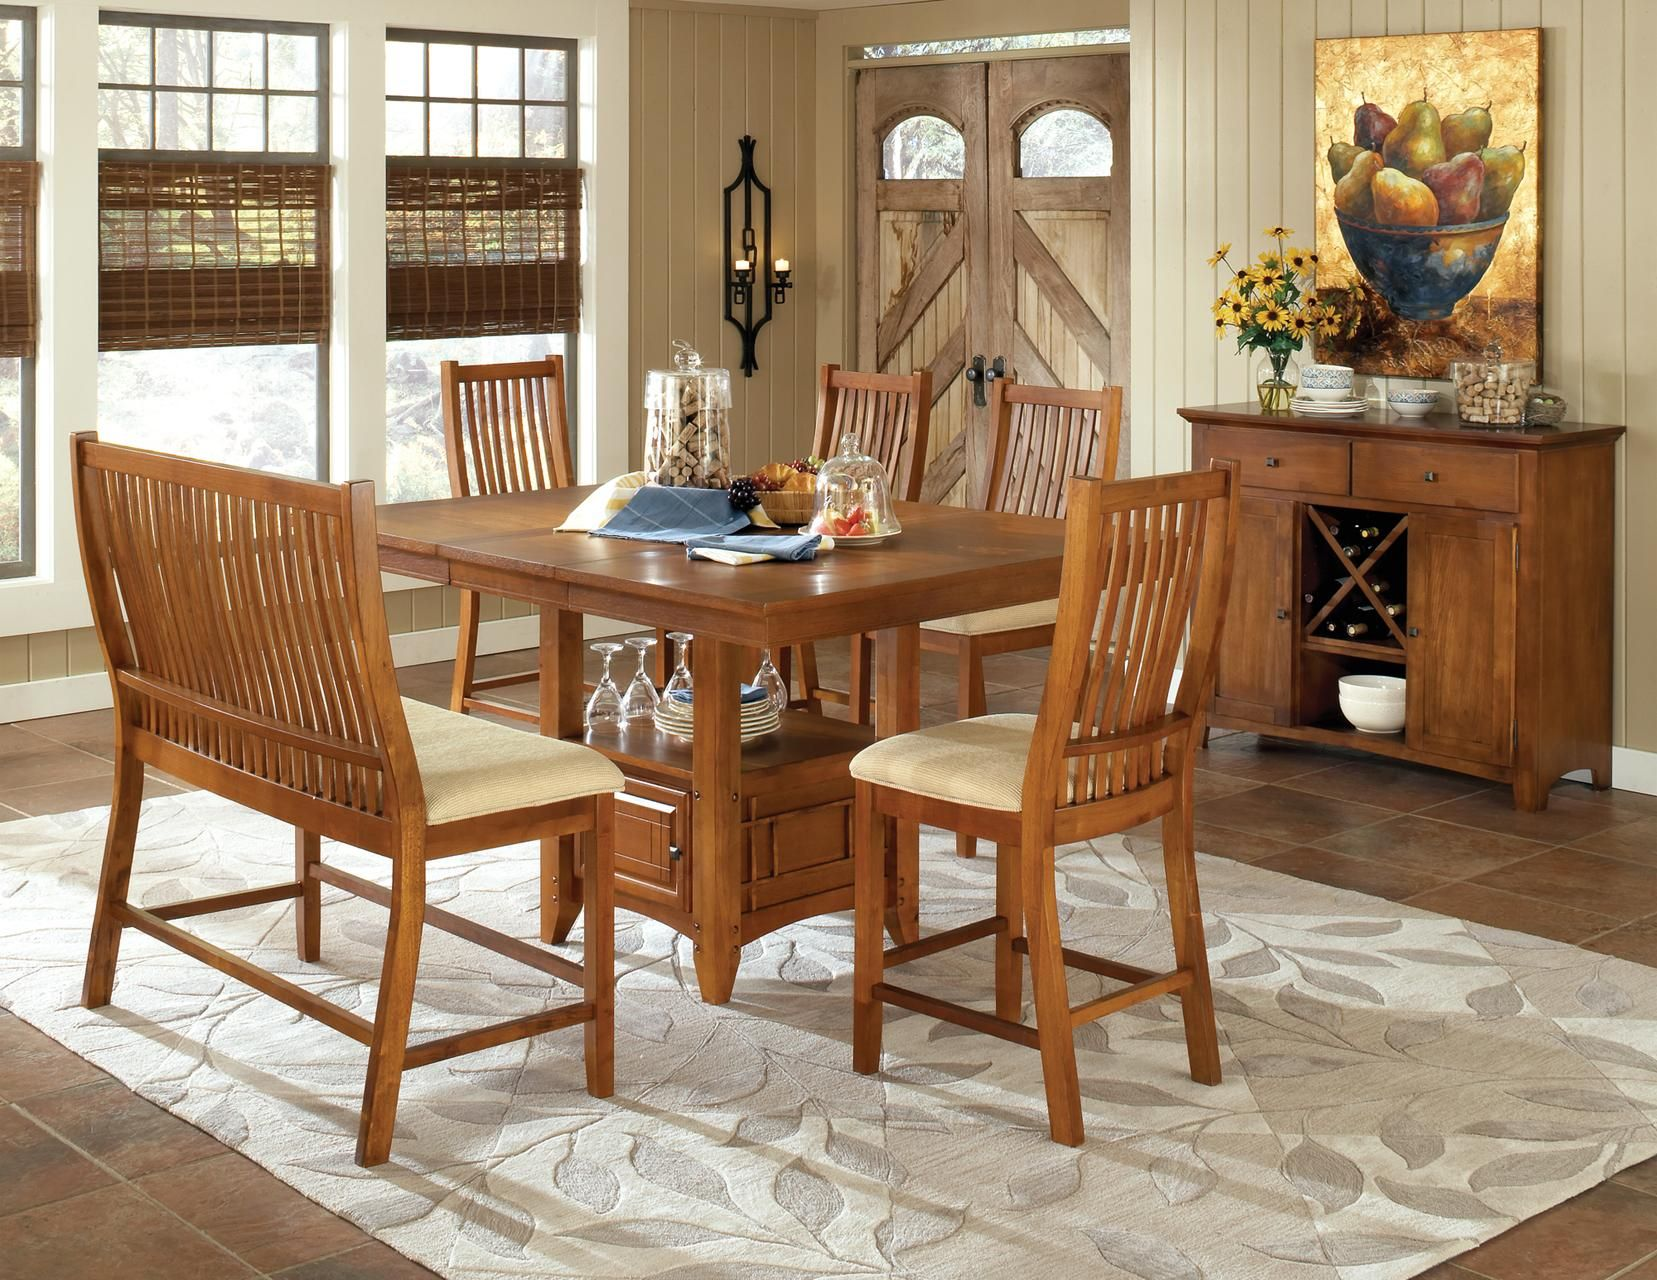 Tulsa Gathering Height Pub Table and Chair Set by Steve Silver